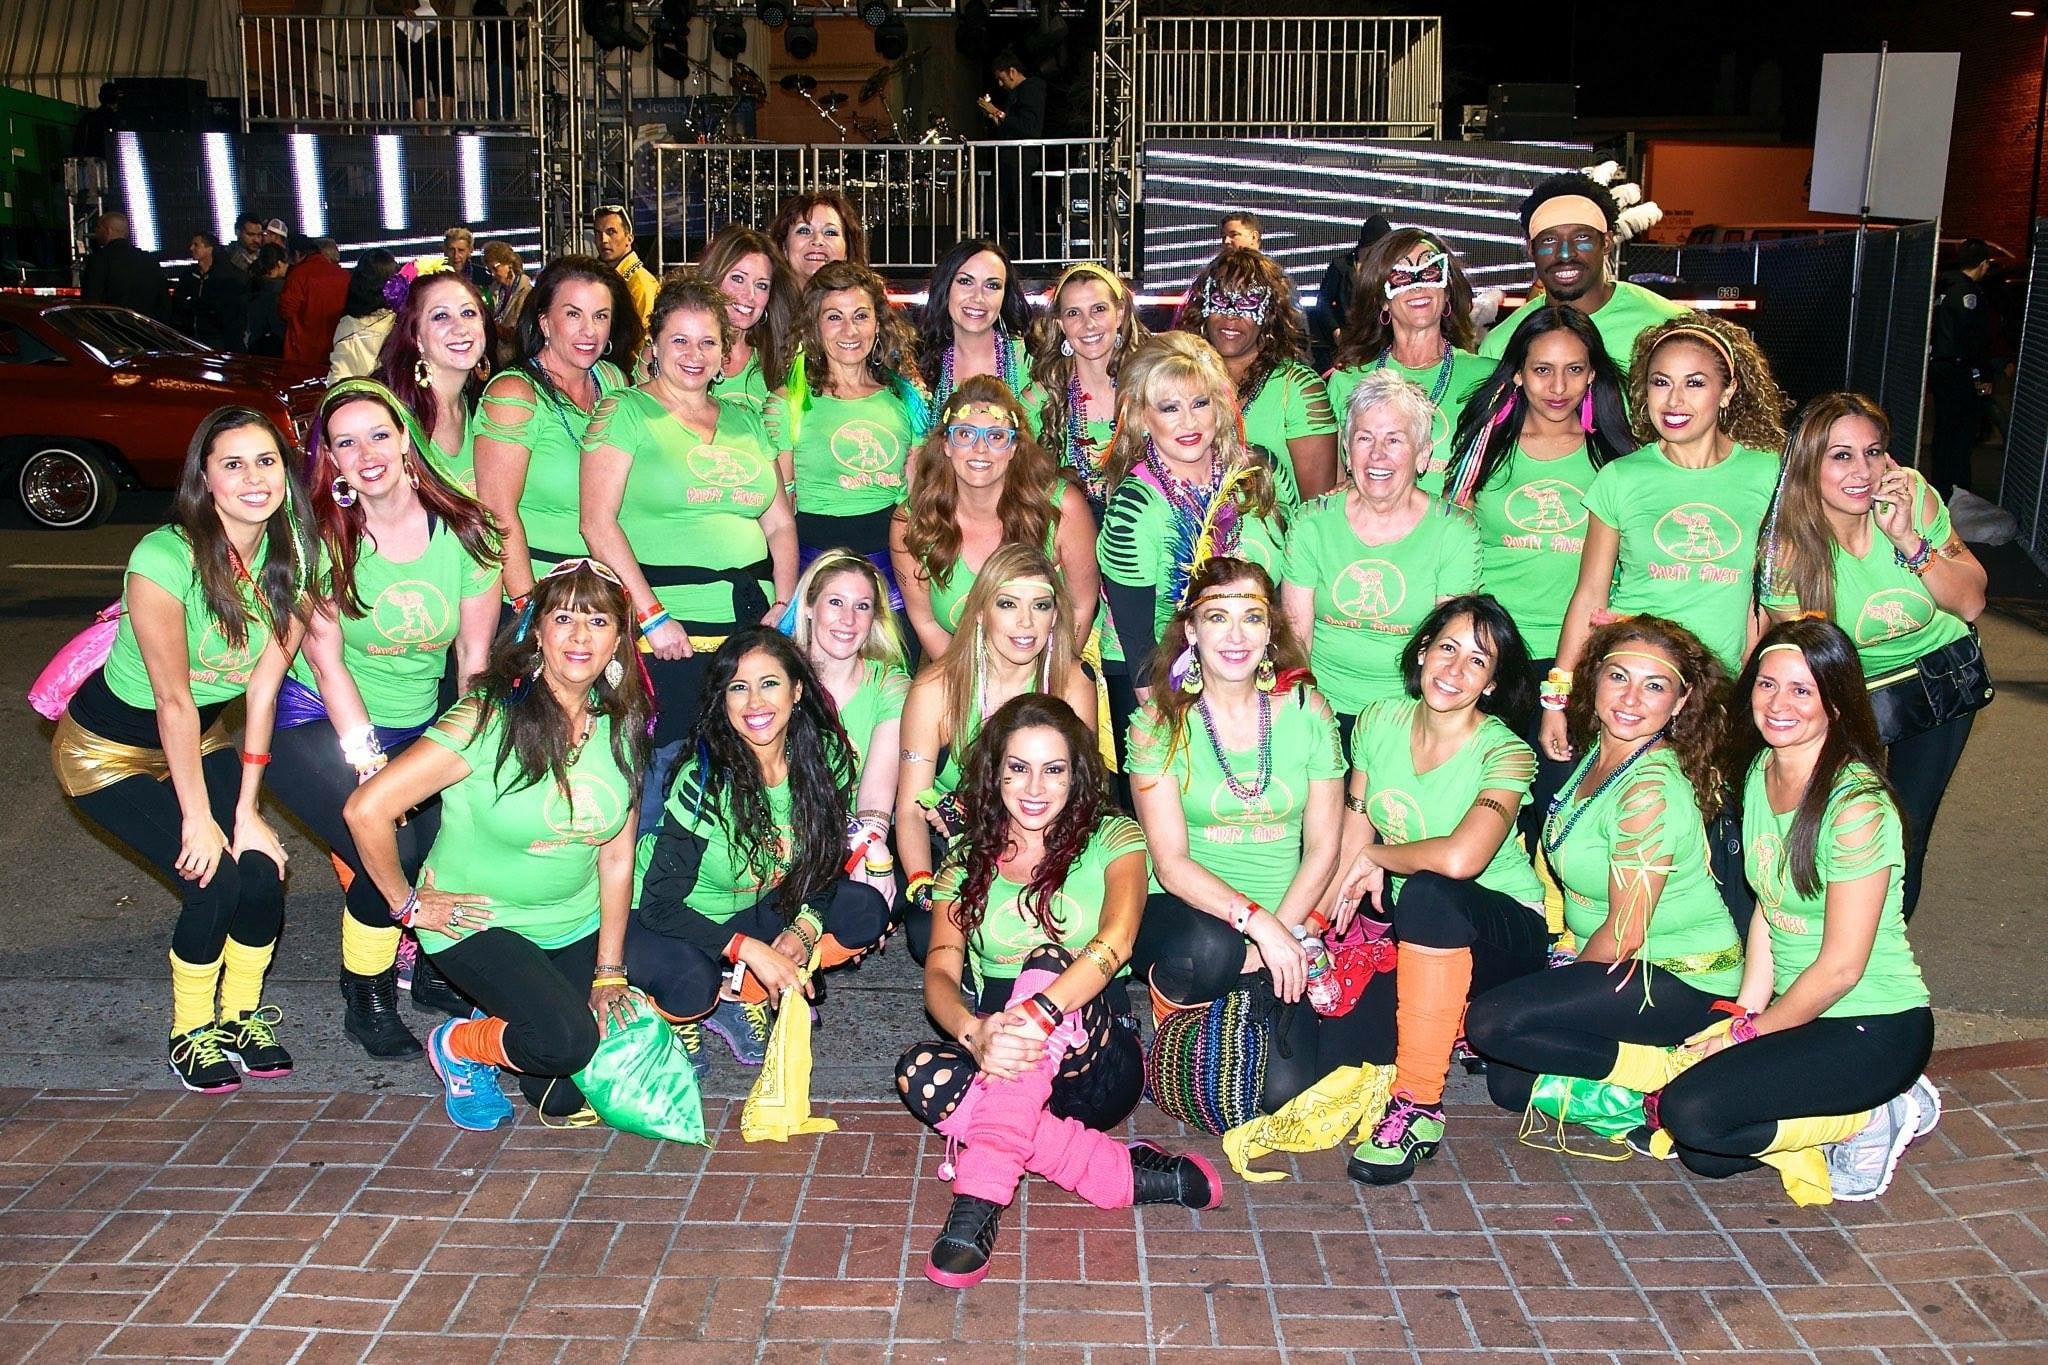 Party Fitness at Mardi Gras Downtown San Diego